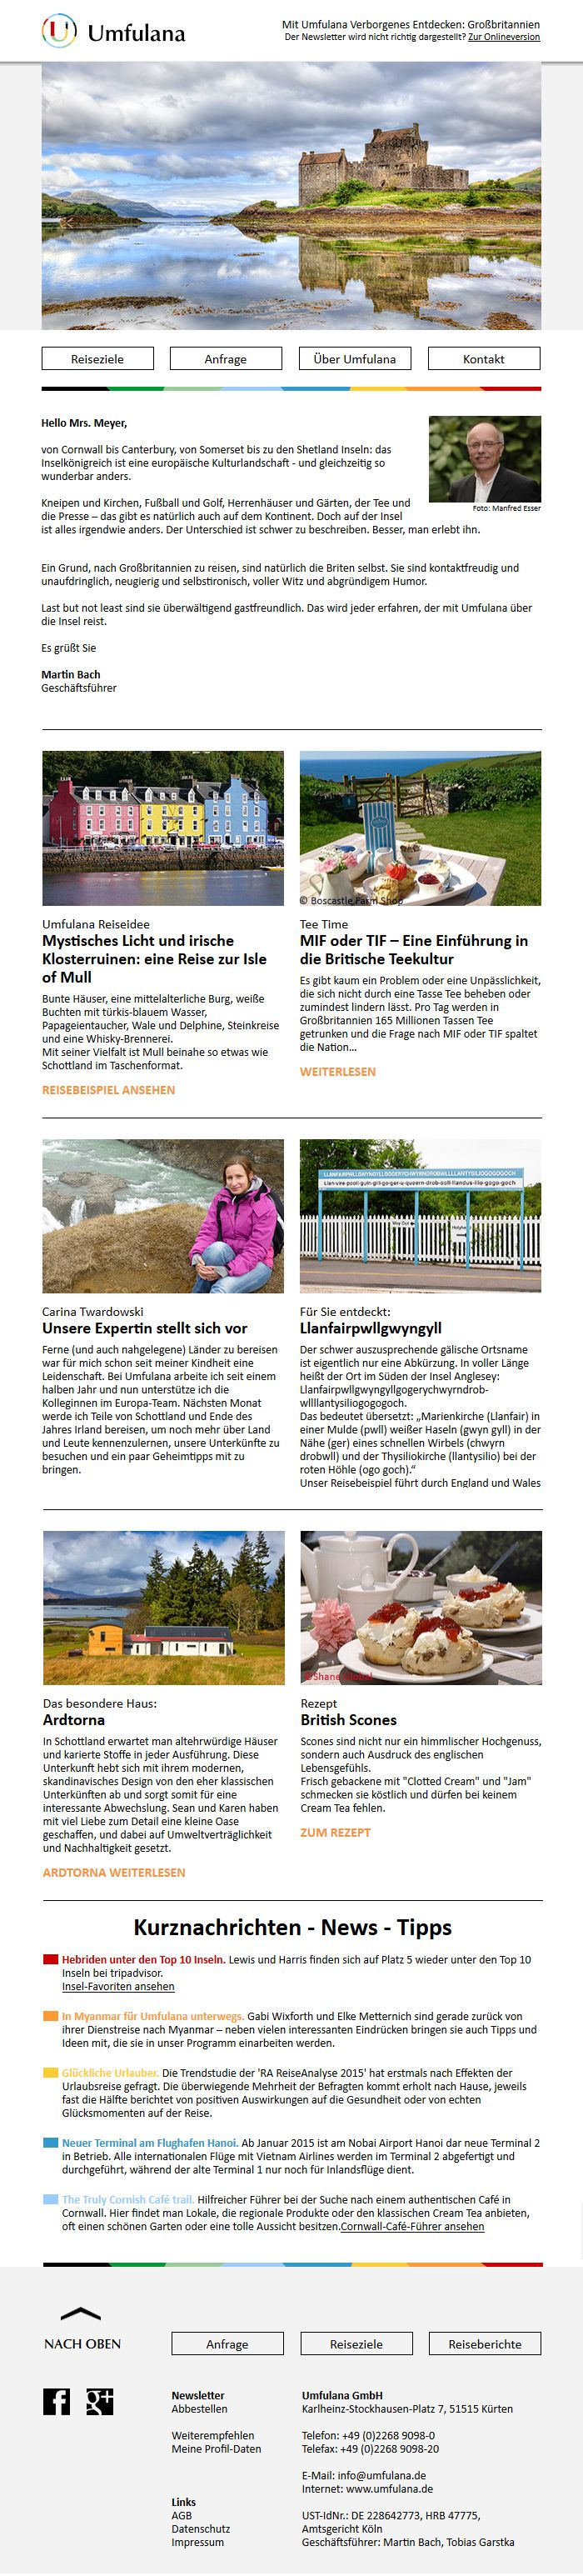 Neues #Newsletter-#Design aus unserer Grafikabteilung für das Touristikunternehmen Umfulana #Trends  #Newsletterdesign #Email #Emailmarketing